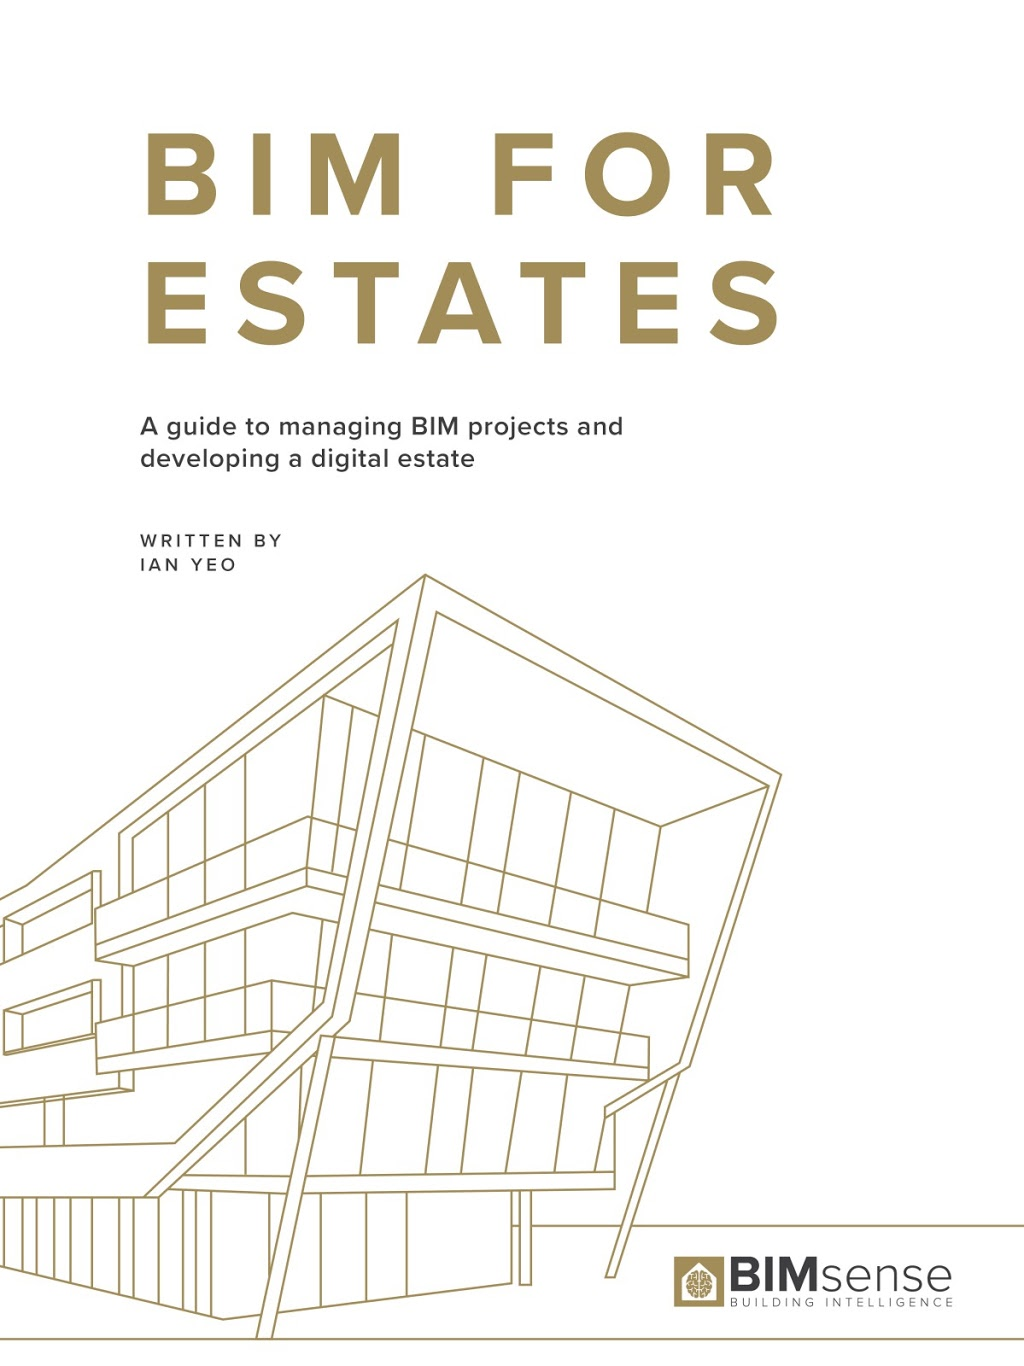 BIM for estates